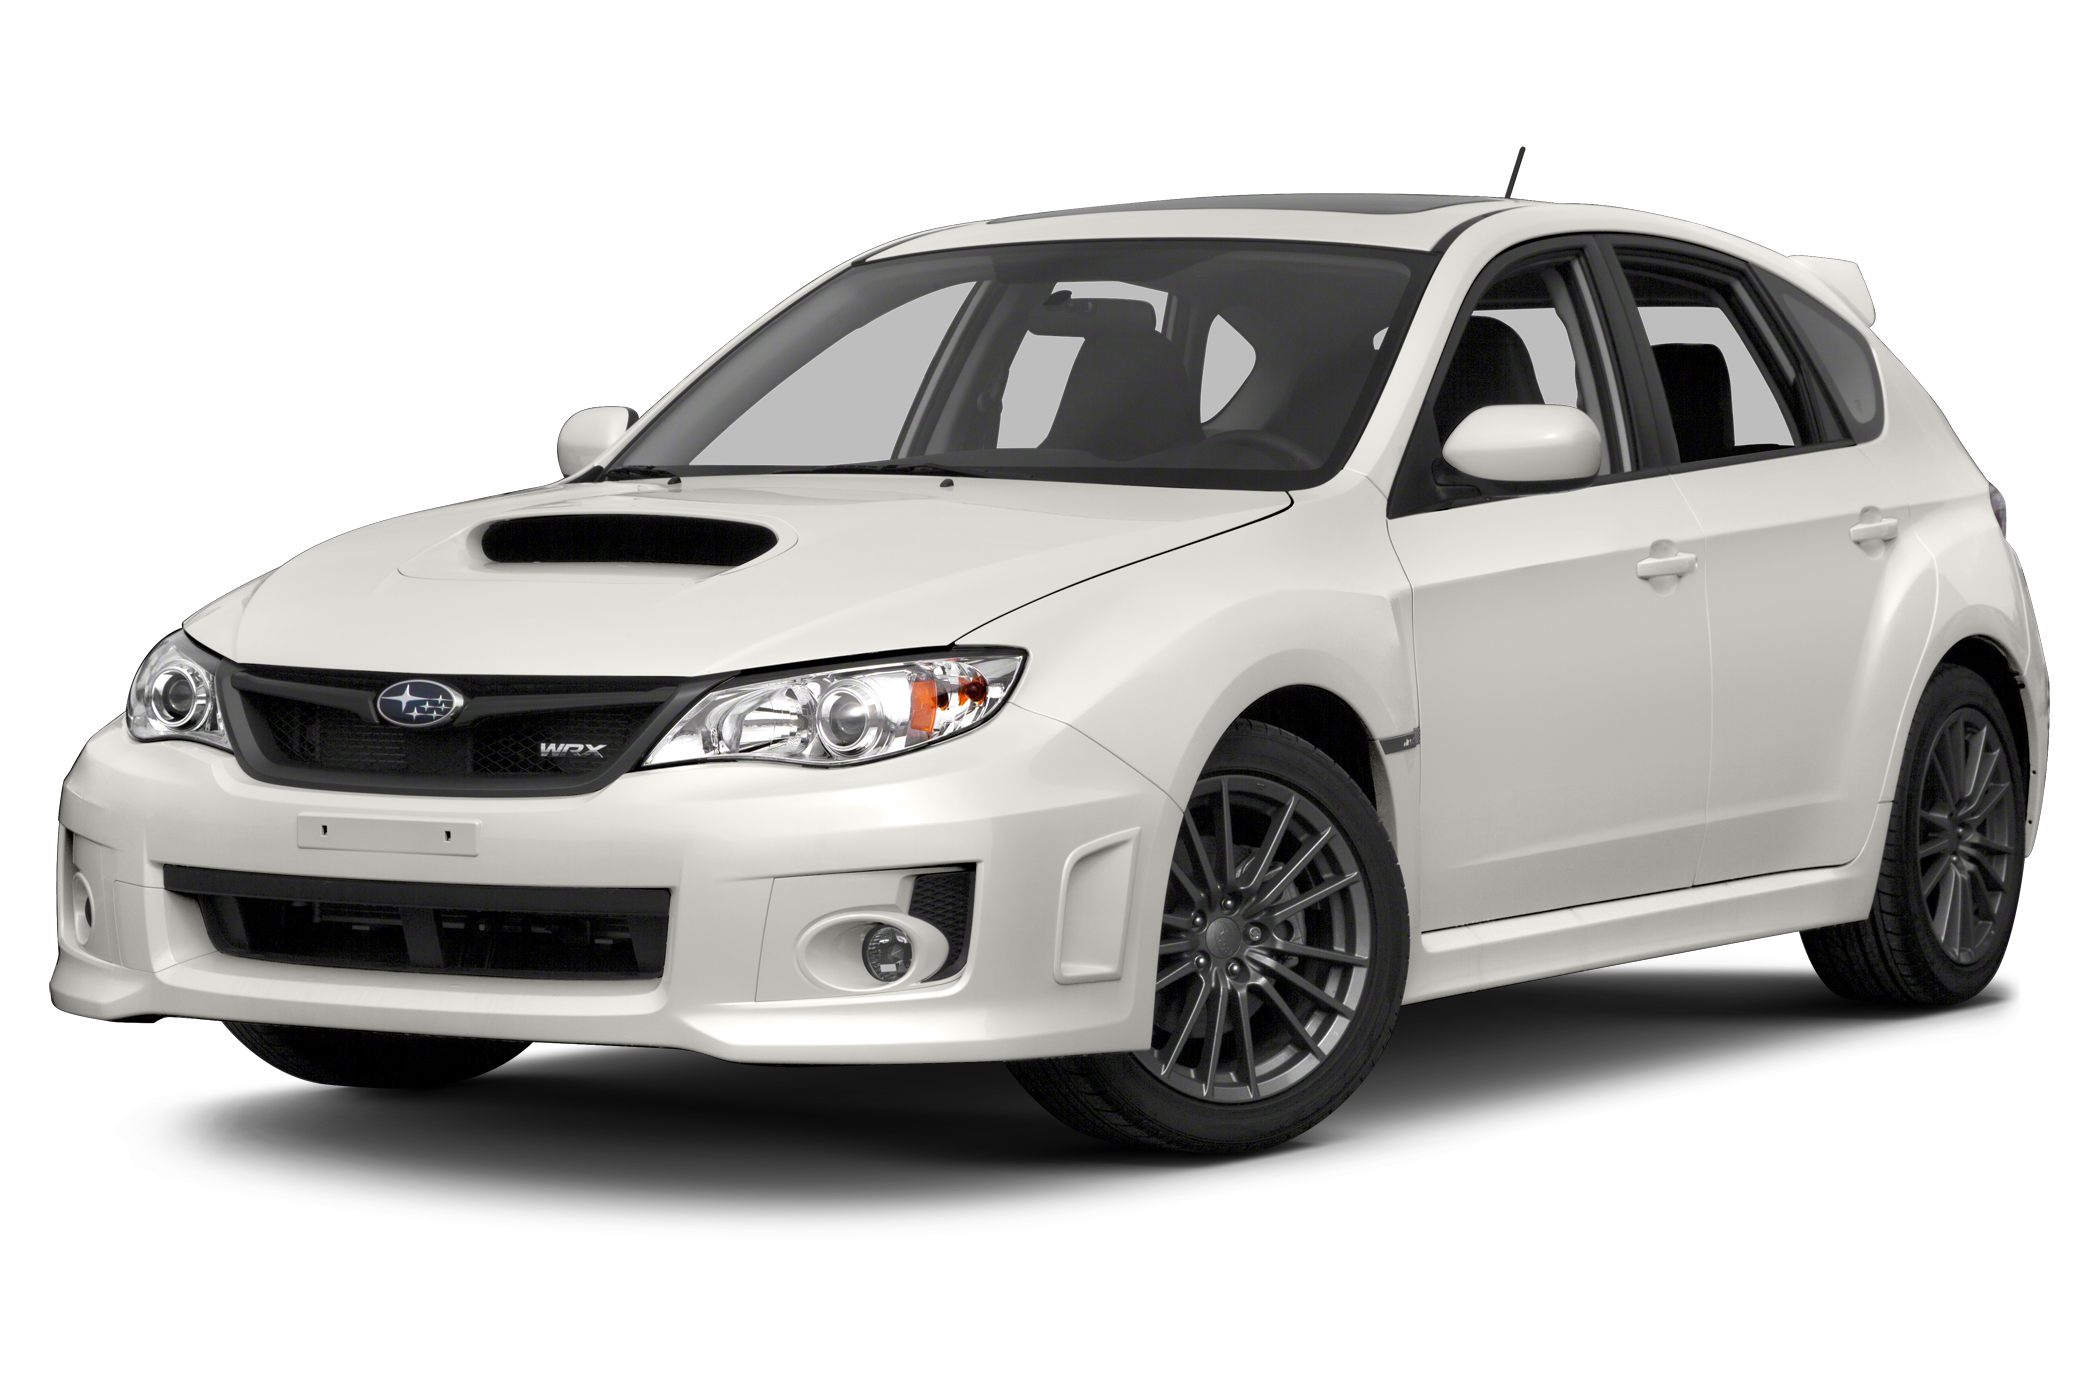 2013 Subaru Impreza WRX